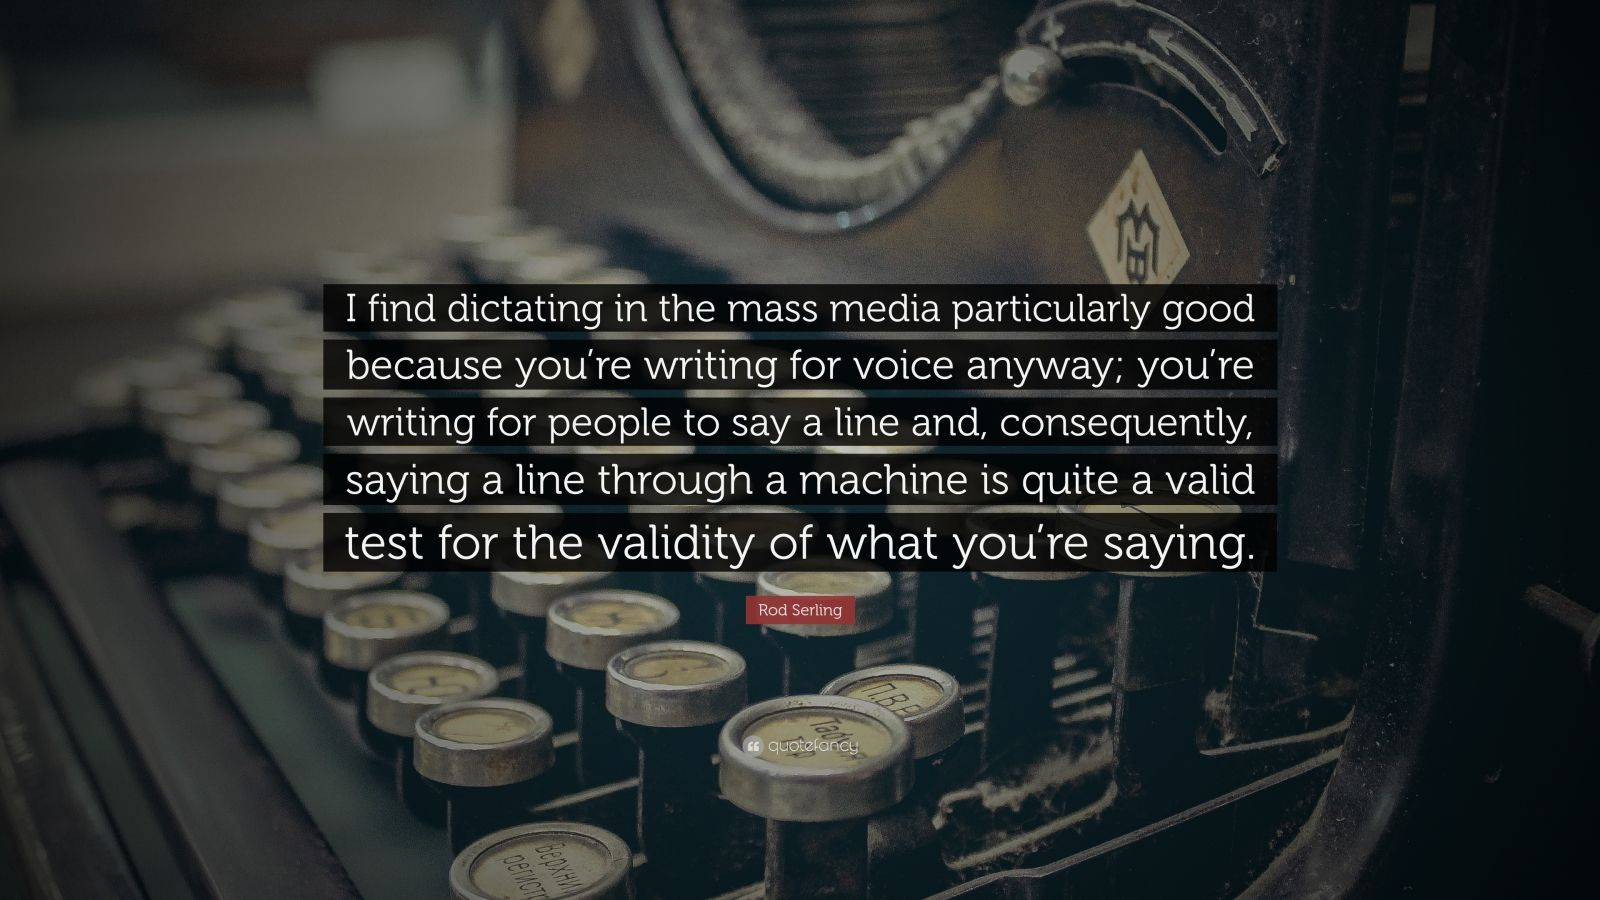 "Rod Serling Quote: ""I find dictating in the mass media particularly good because you're writing for voice anyway; you're writing for people to say a line and, consequently, saying a line through a machine is quite a valid test for the validity of what you're saying."""